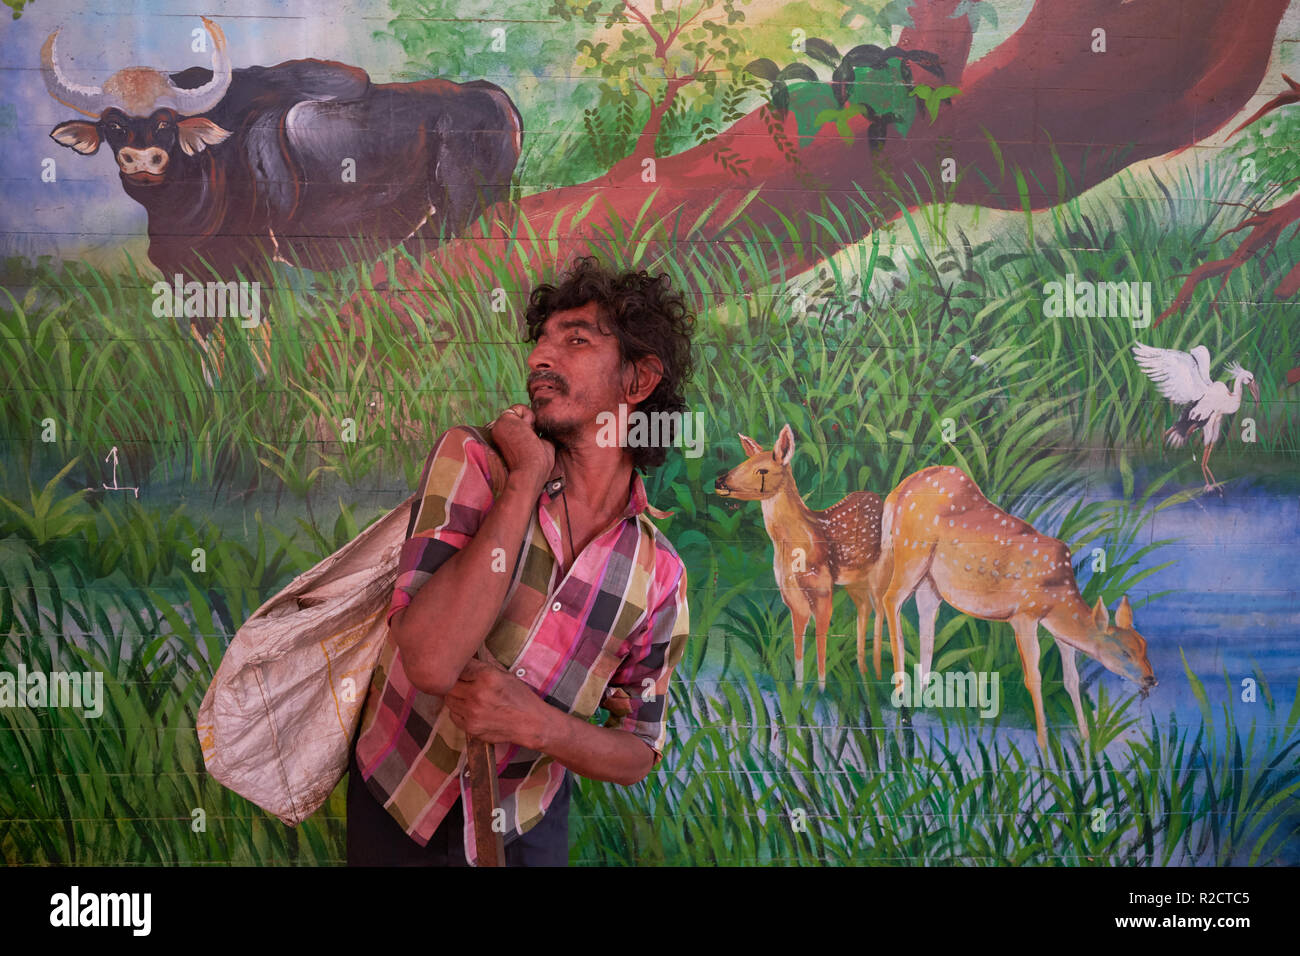 A beggar, originally from Assam, India, crippled and deformed through a traffic accident, passing a wall painting in Byculla Station in Mumbai, India - Stock Image